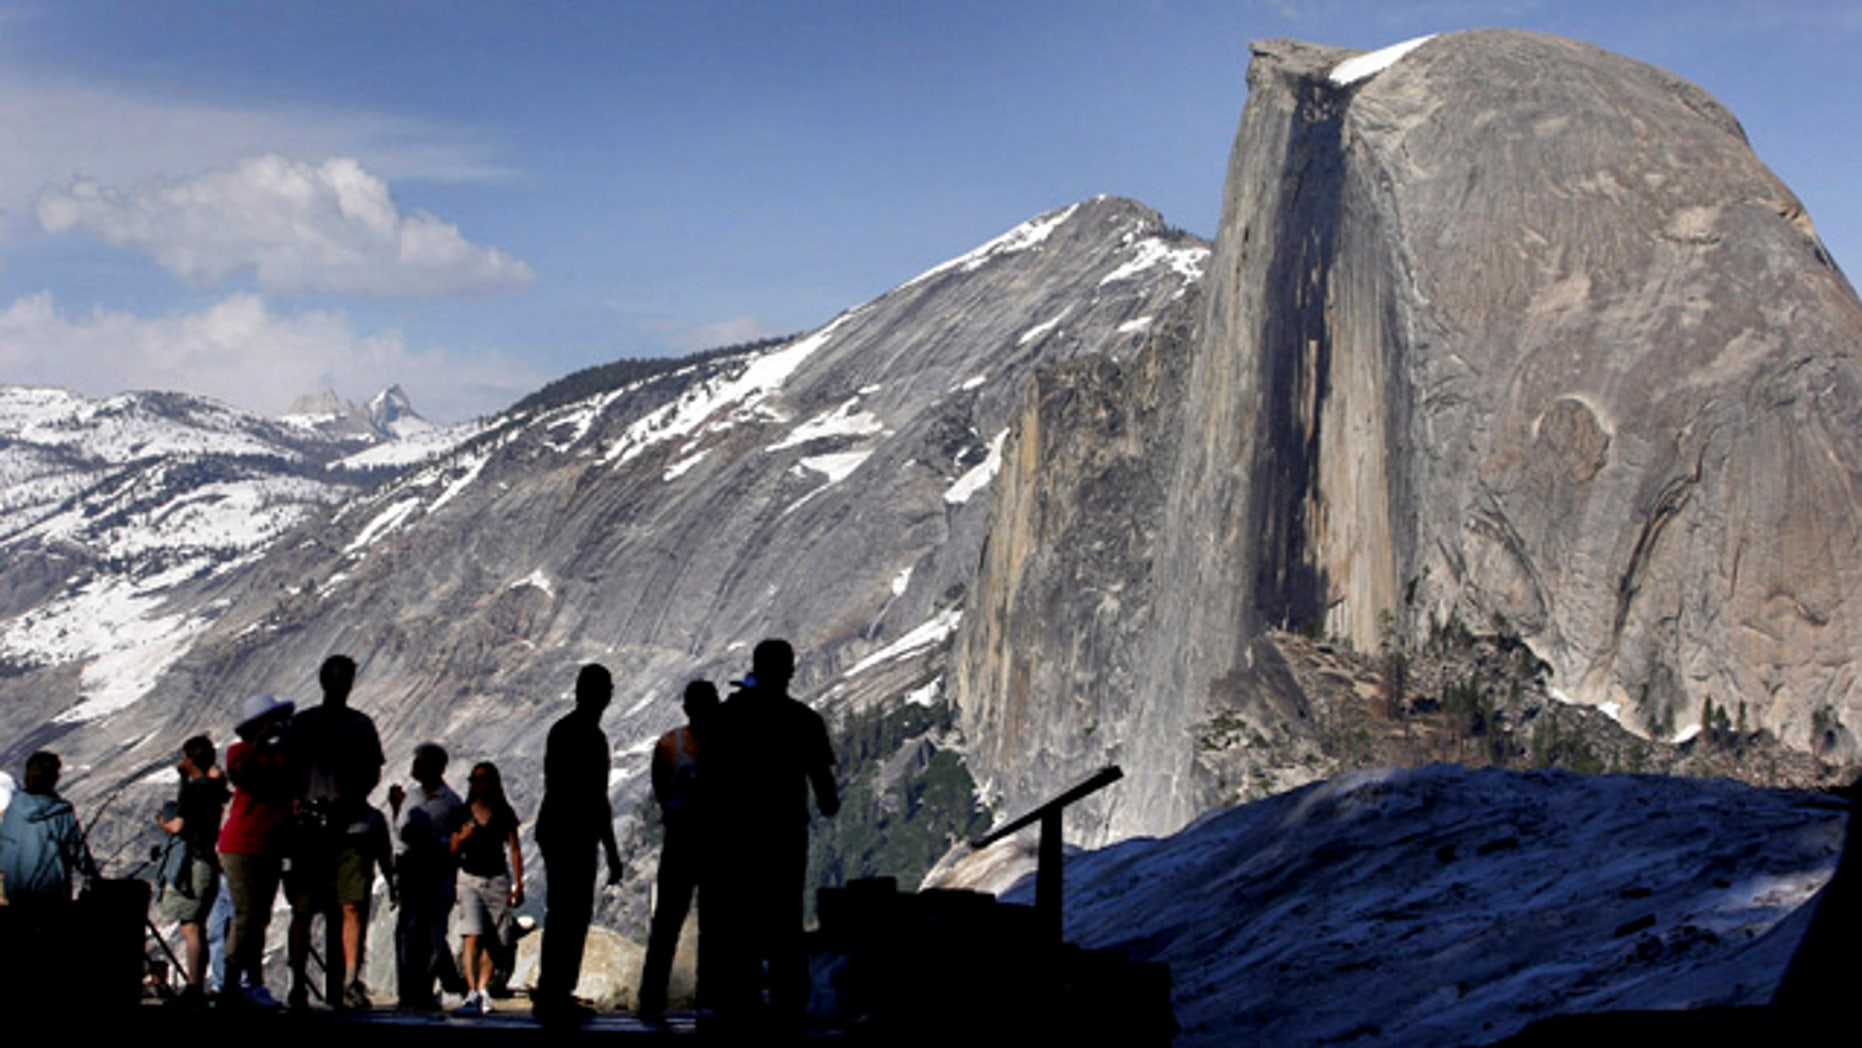 FILE - In this 2005 file photo, visitors view Half Dome from Glacier Point at Yosemite National Park, Calif. (AP Photo/Dino Vournas, File)